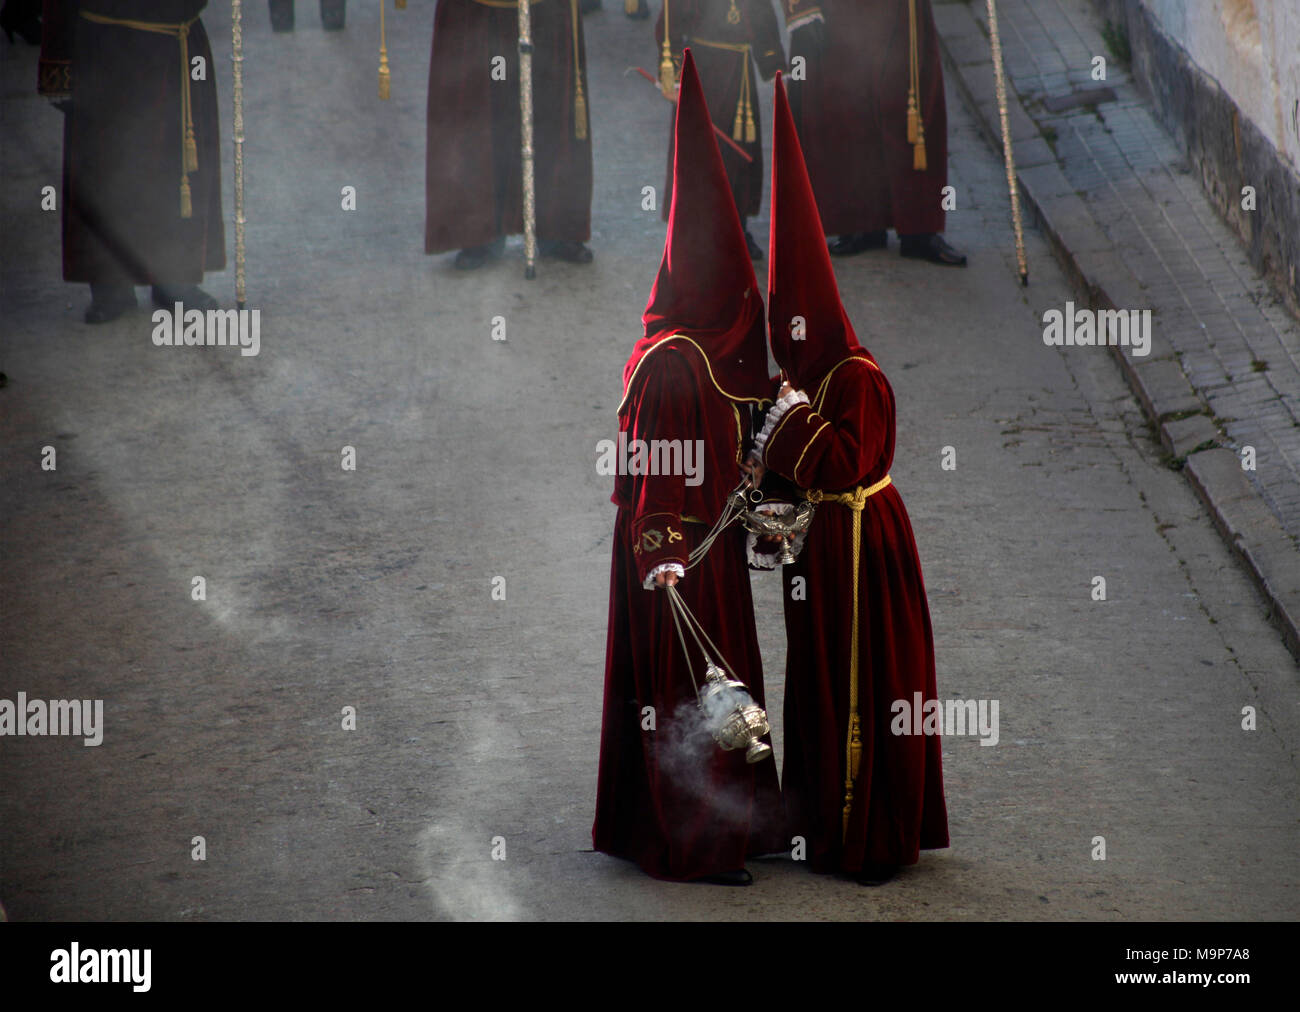 Altar servers wearing red clothing and pointed hoods talking during Easter Week celebrations in Baeza, Jaen Province, Andalusia, Spain - Stock Image